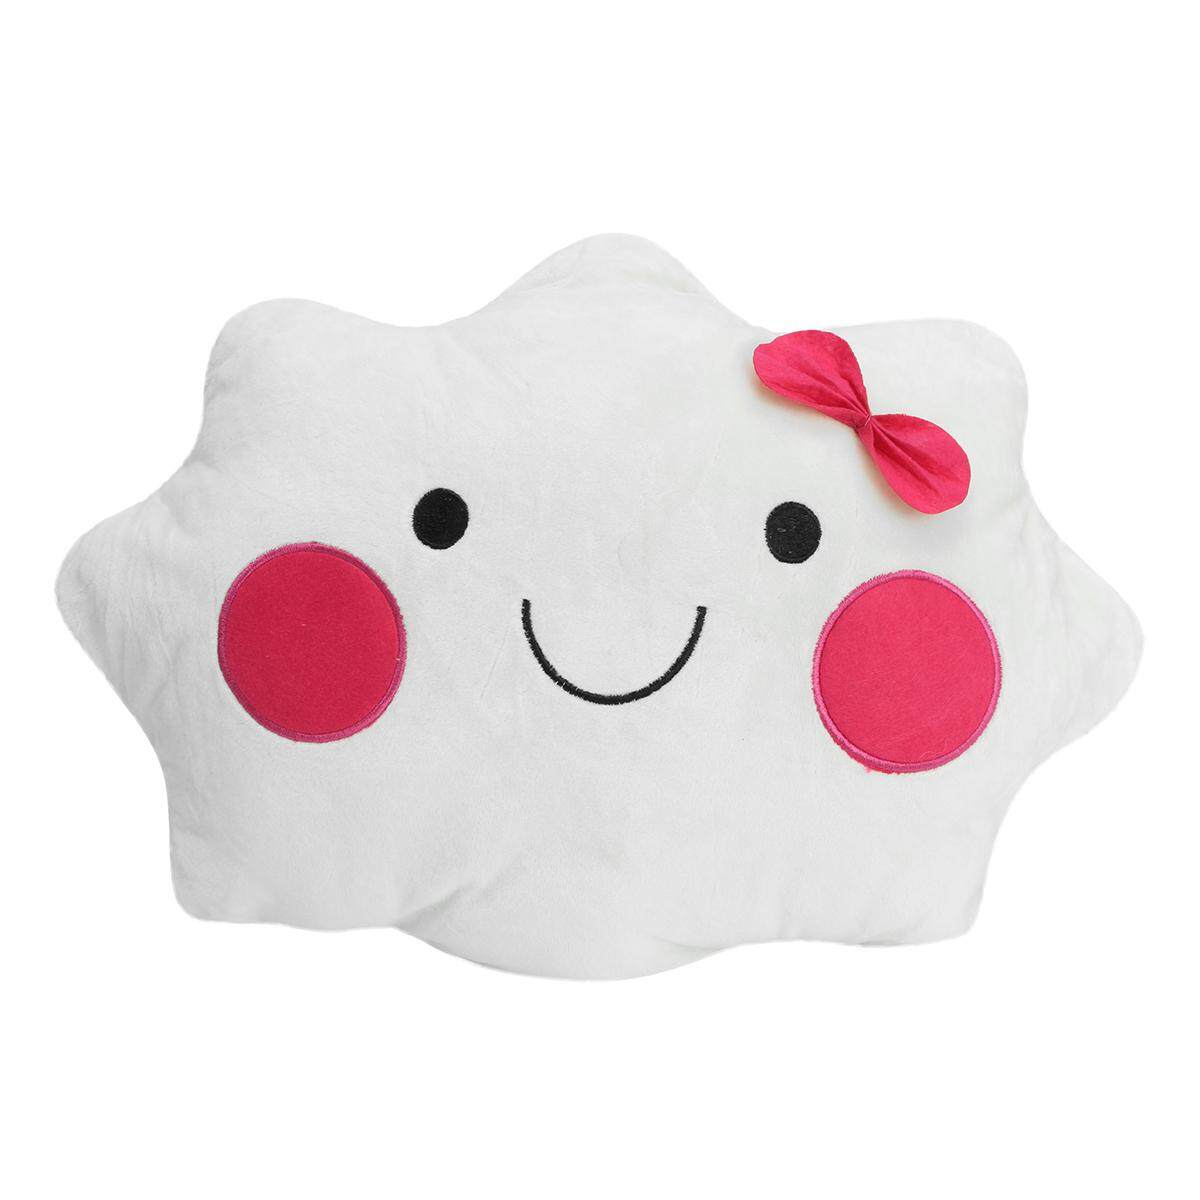 Hình ảnh Cute Smile Face Cloud Plush Pillow Bow Sweet Couch Sofa Back Cushion Home Office # 45cm